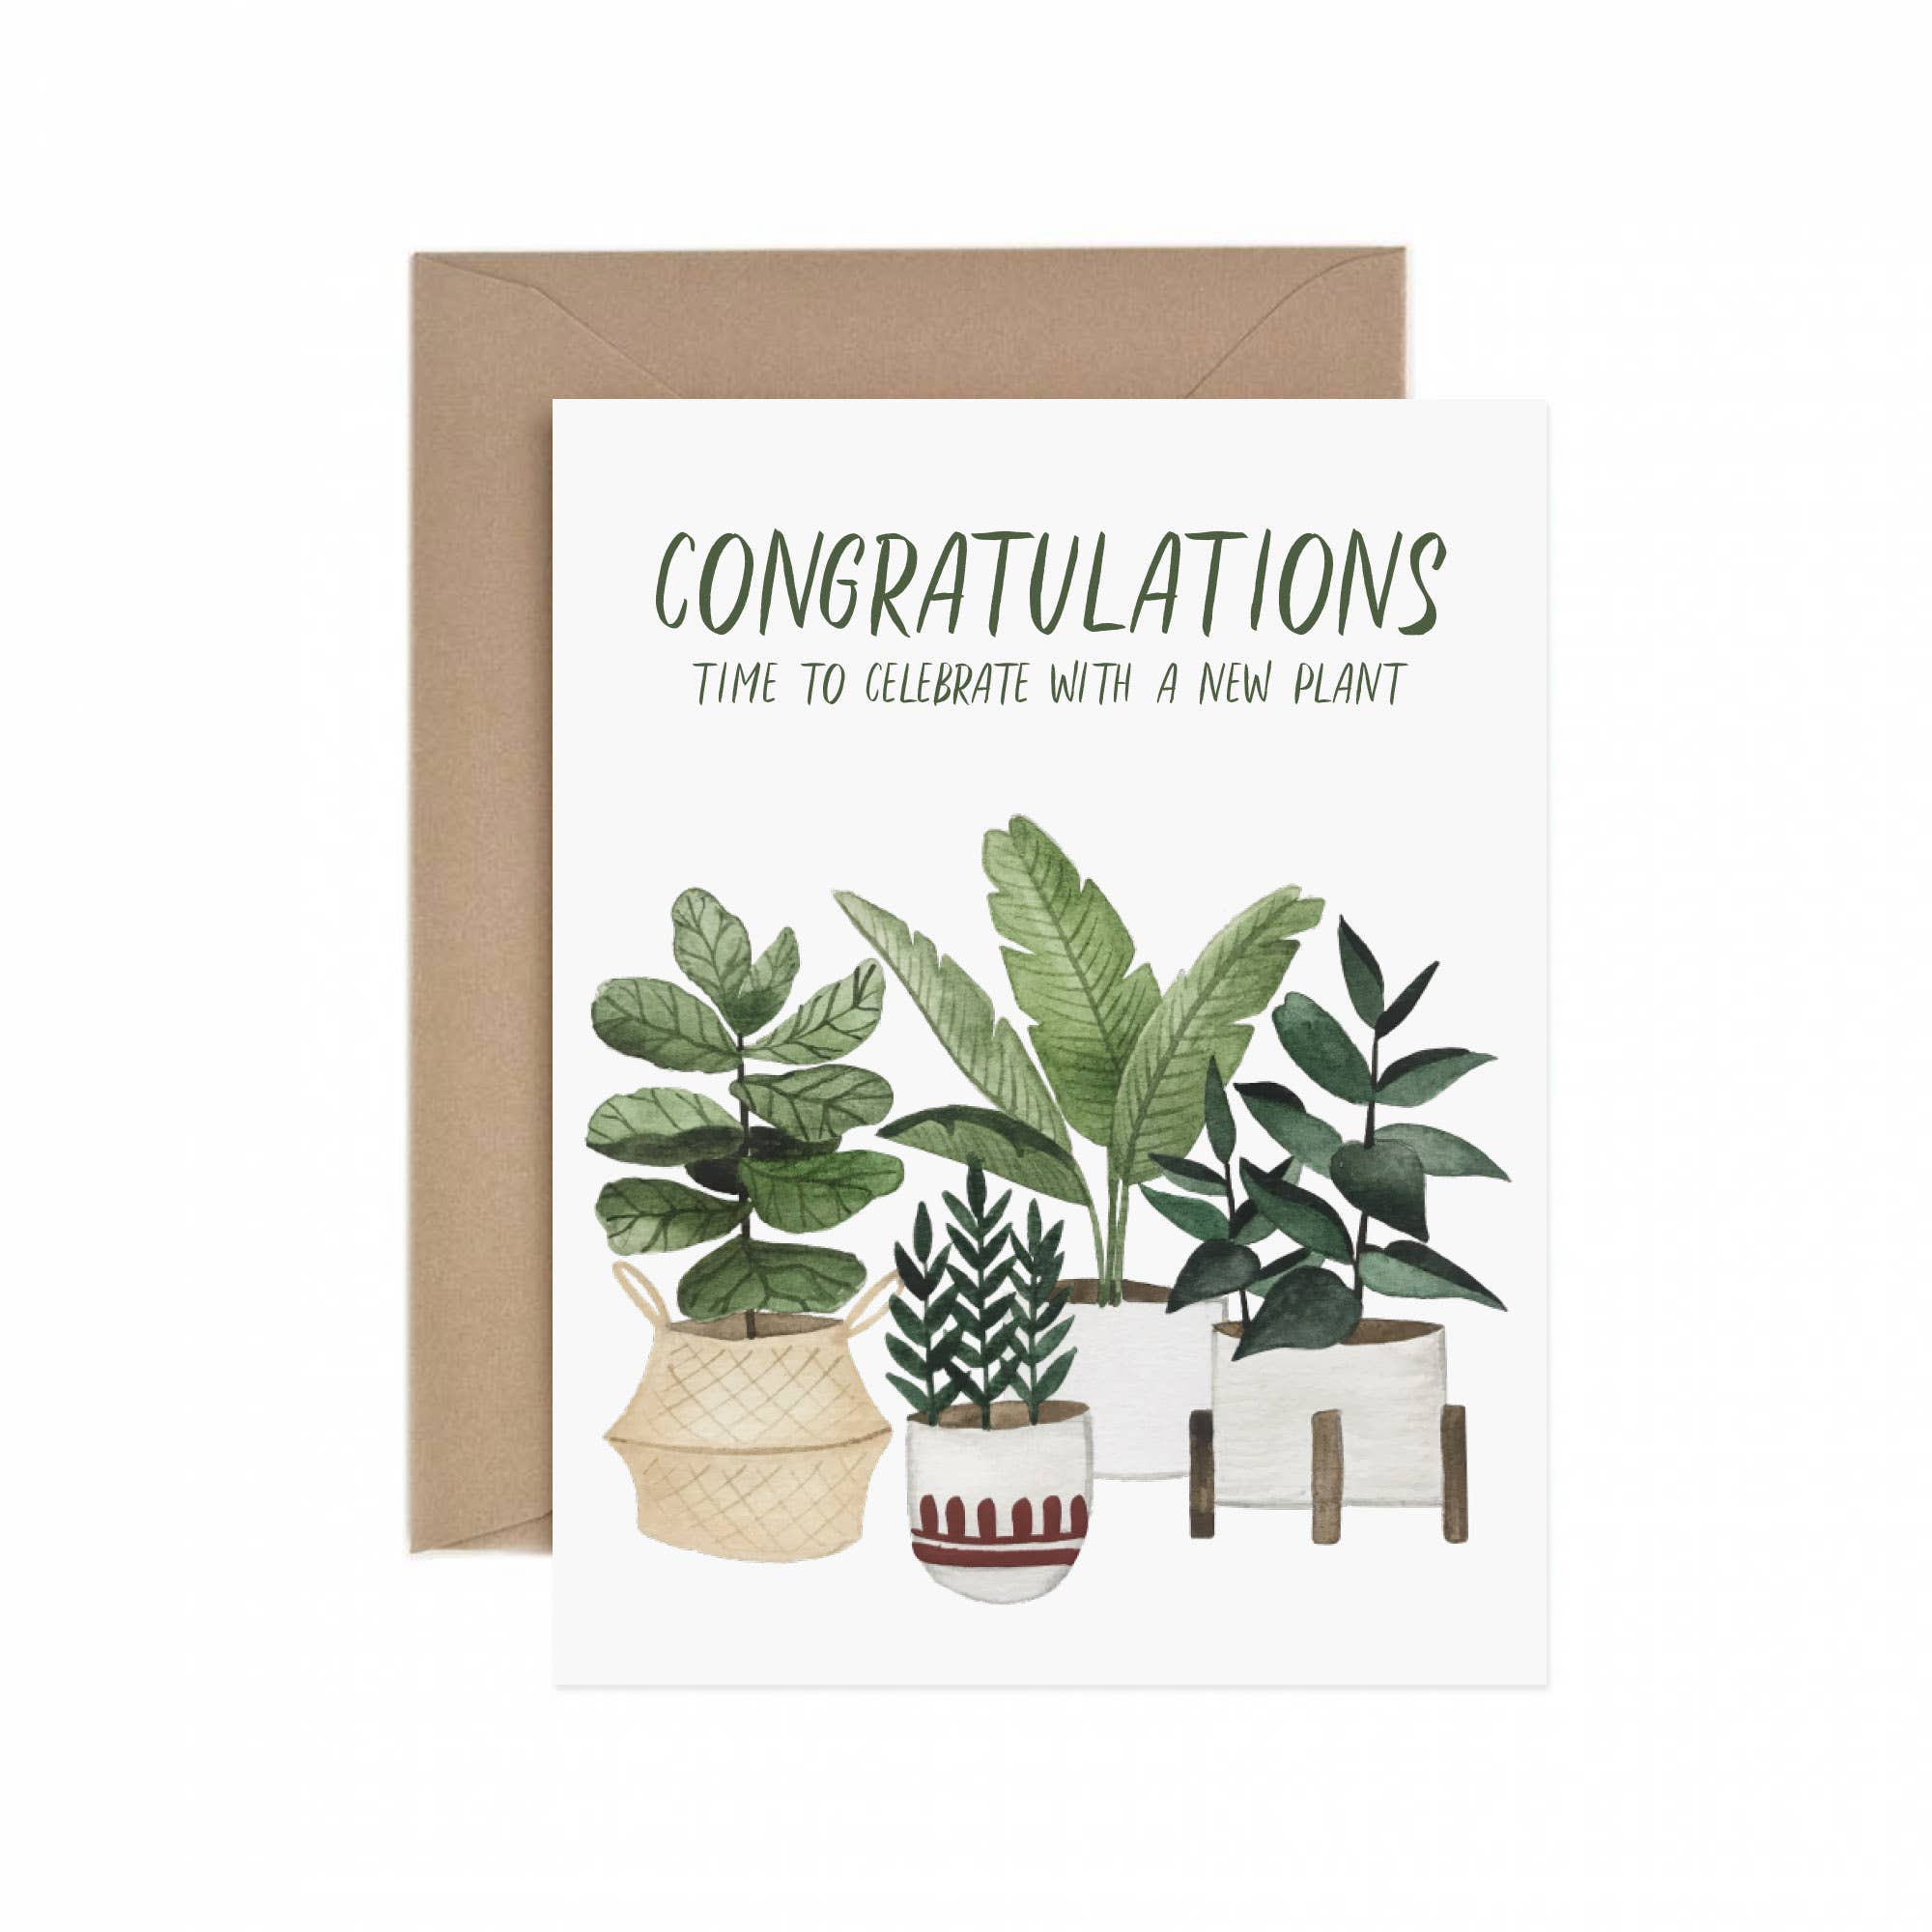 CONGRATULATIONS NEW PLANT CARD